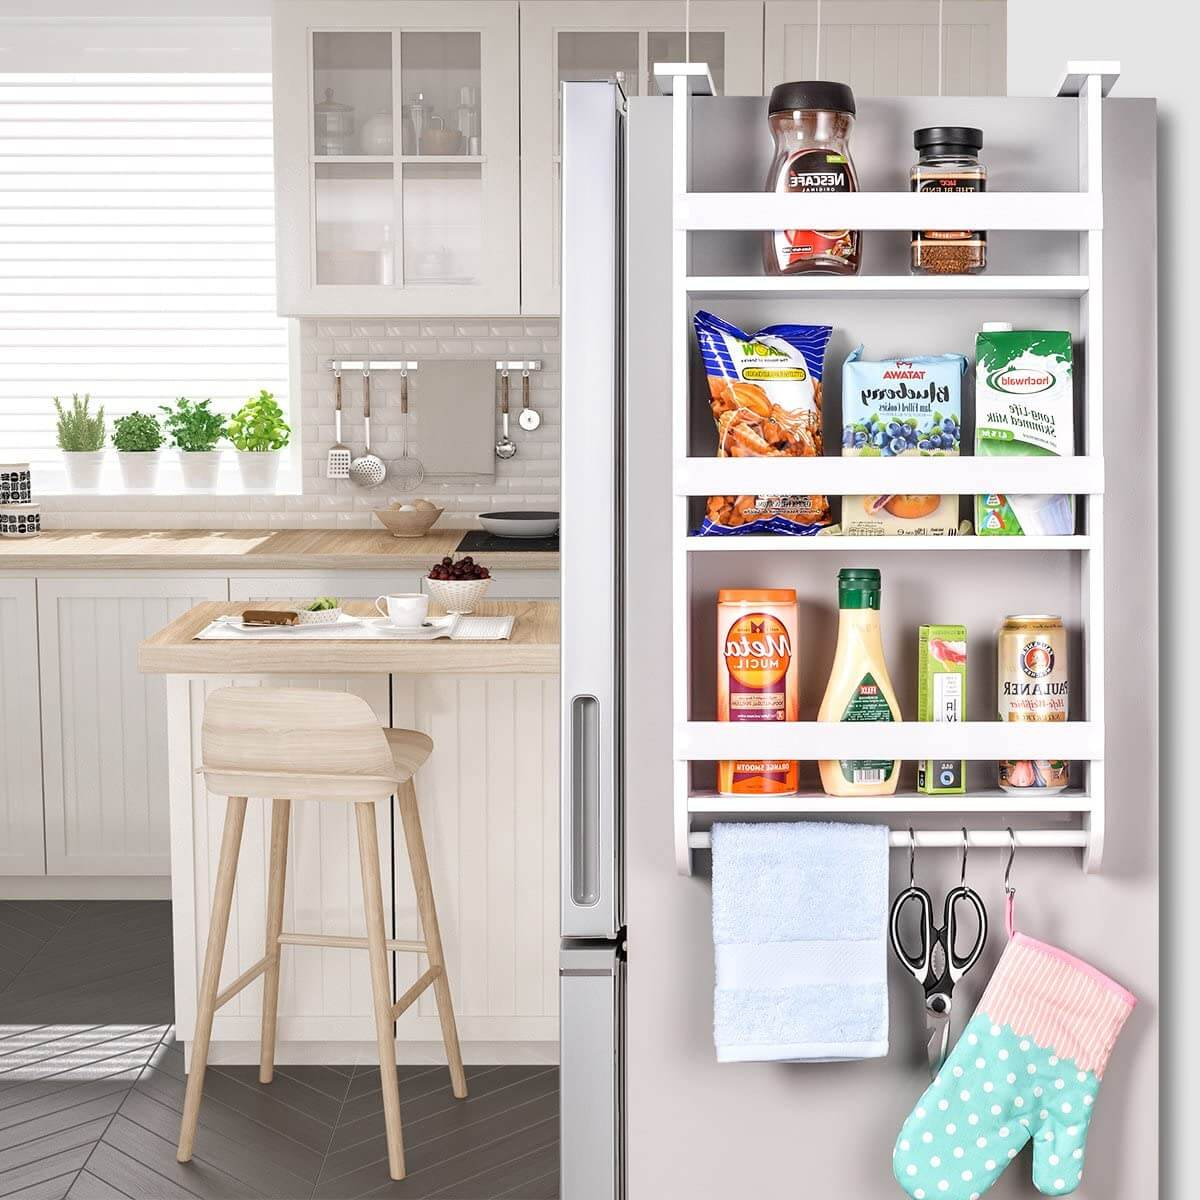 Wooden Side Shelf for Refrigerator with Rack